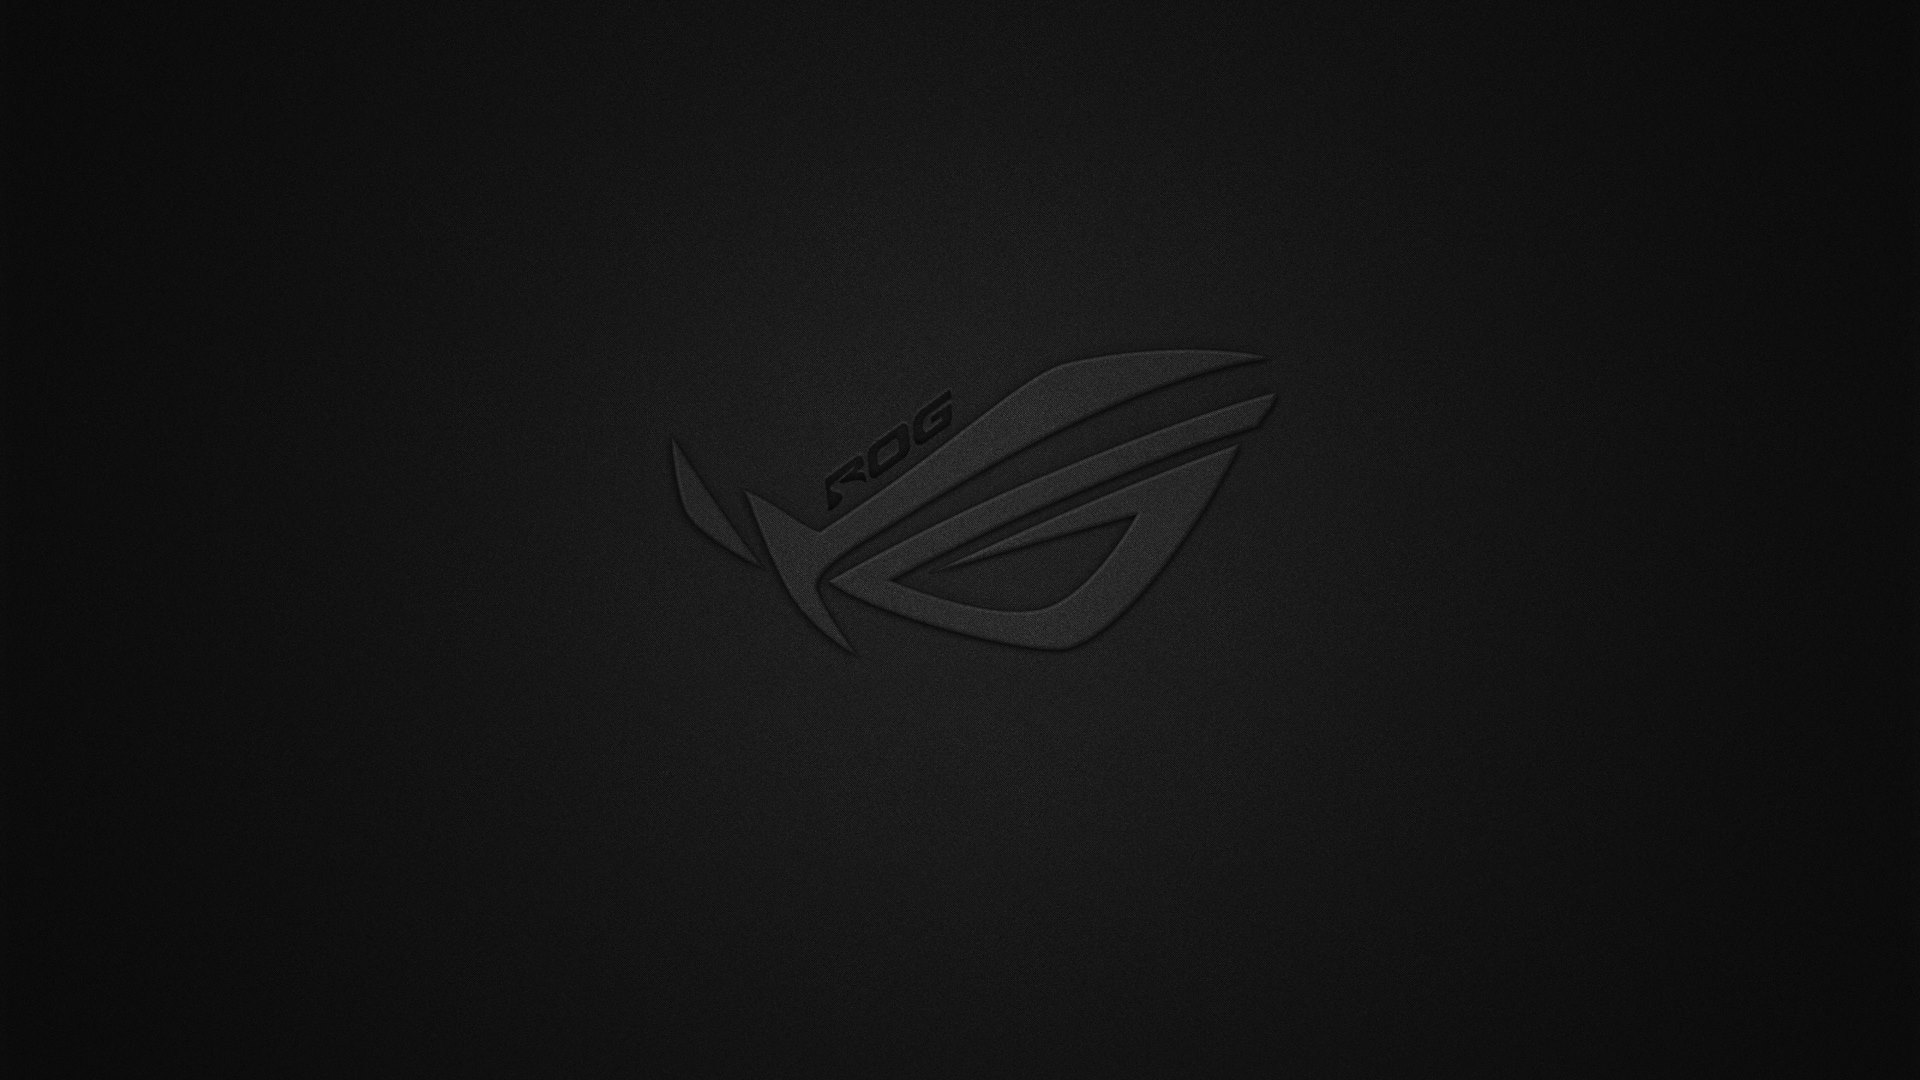 Asus Gaming Wallpapers Images